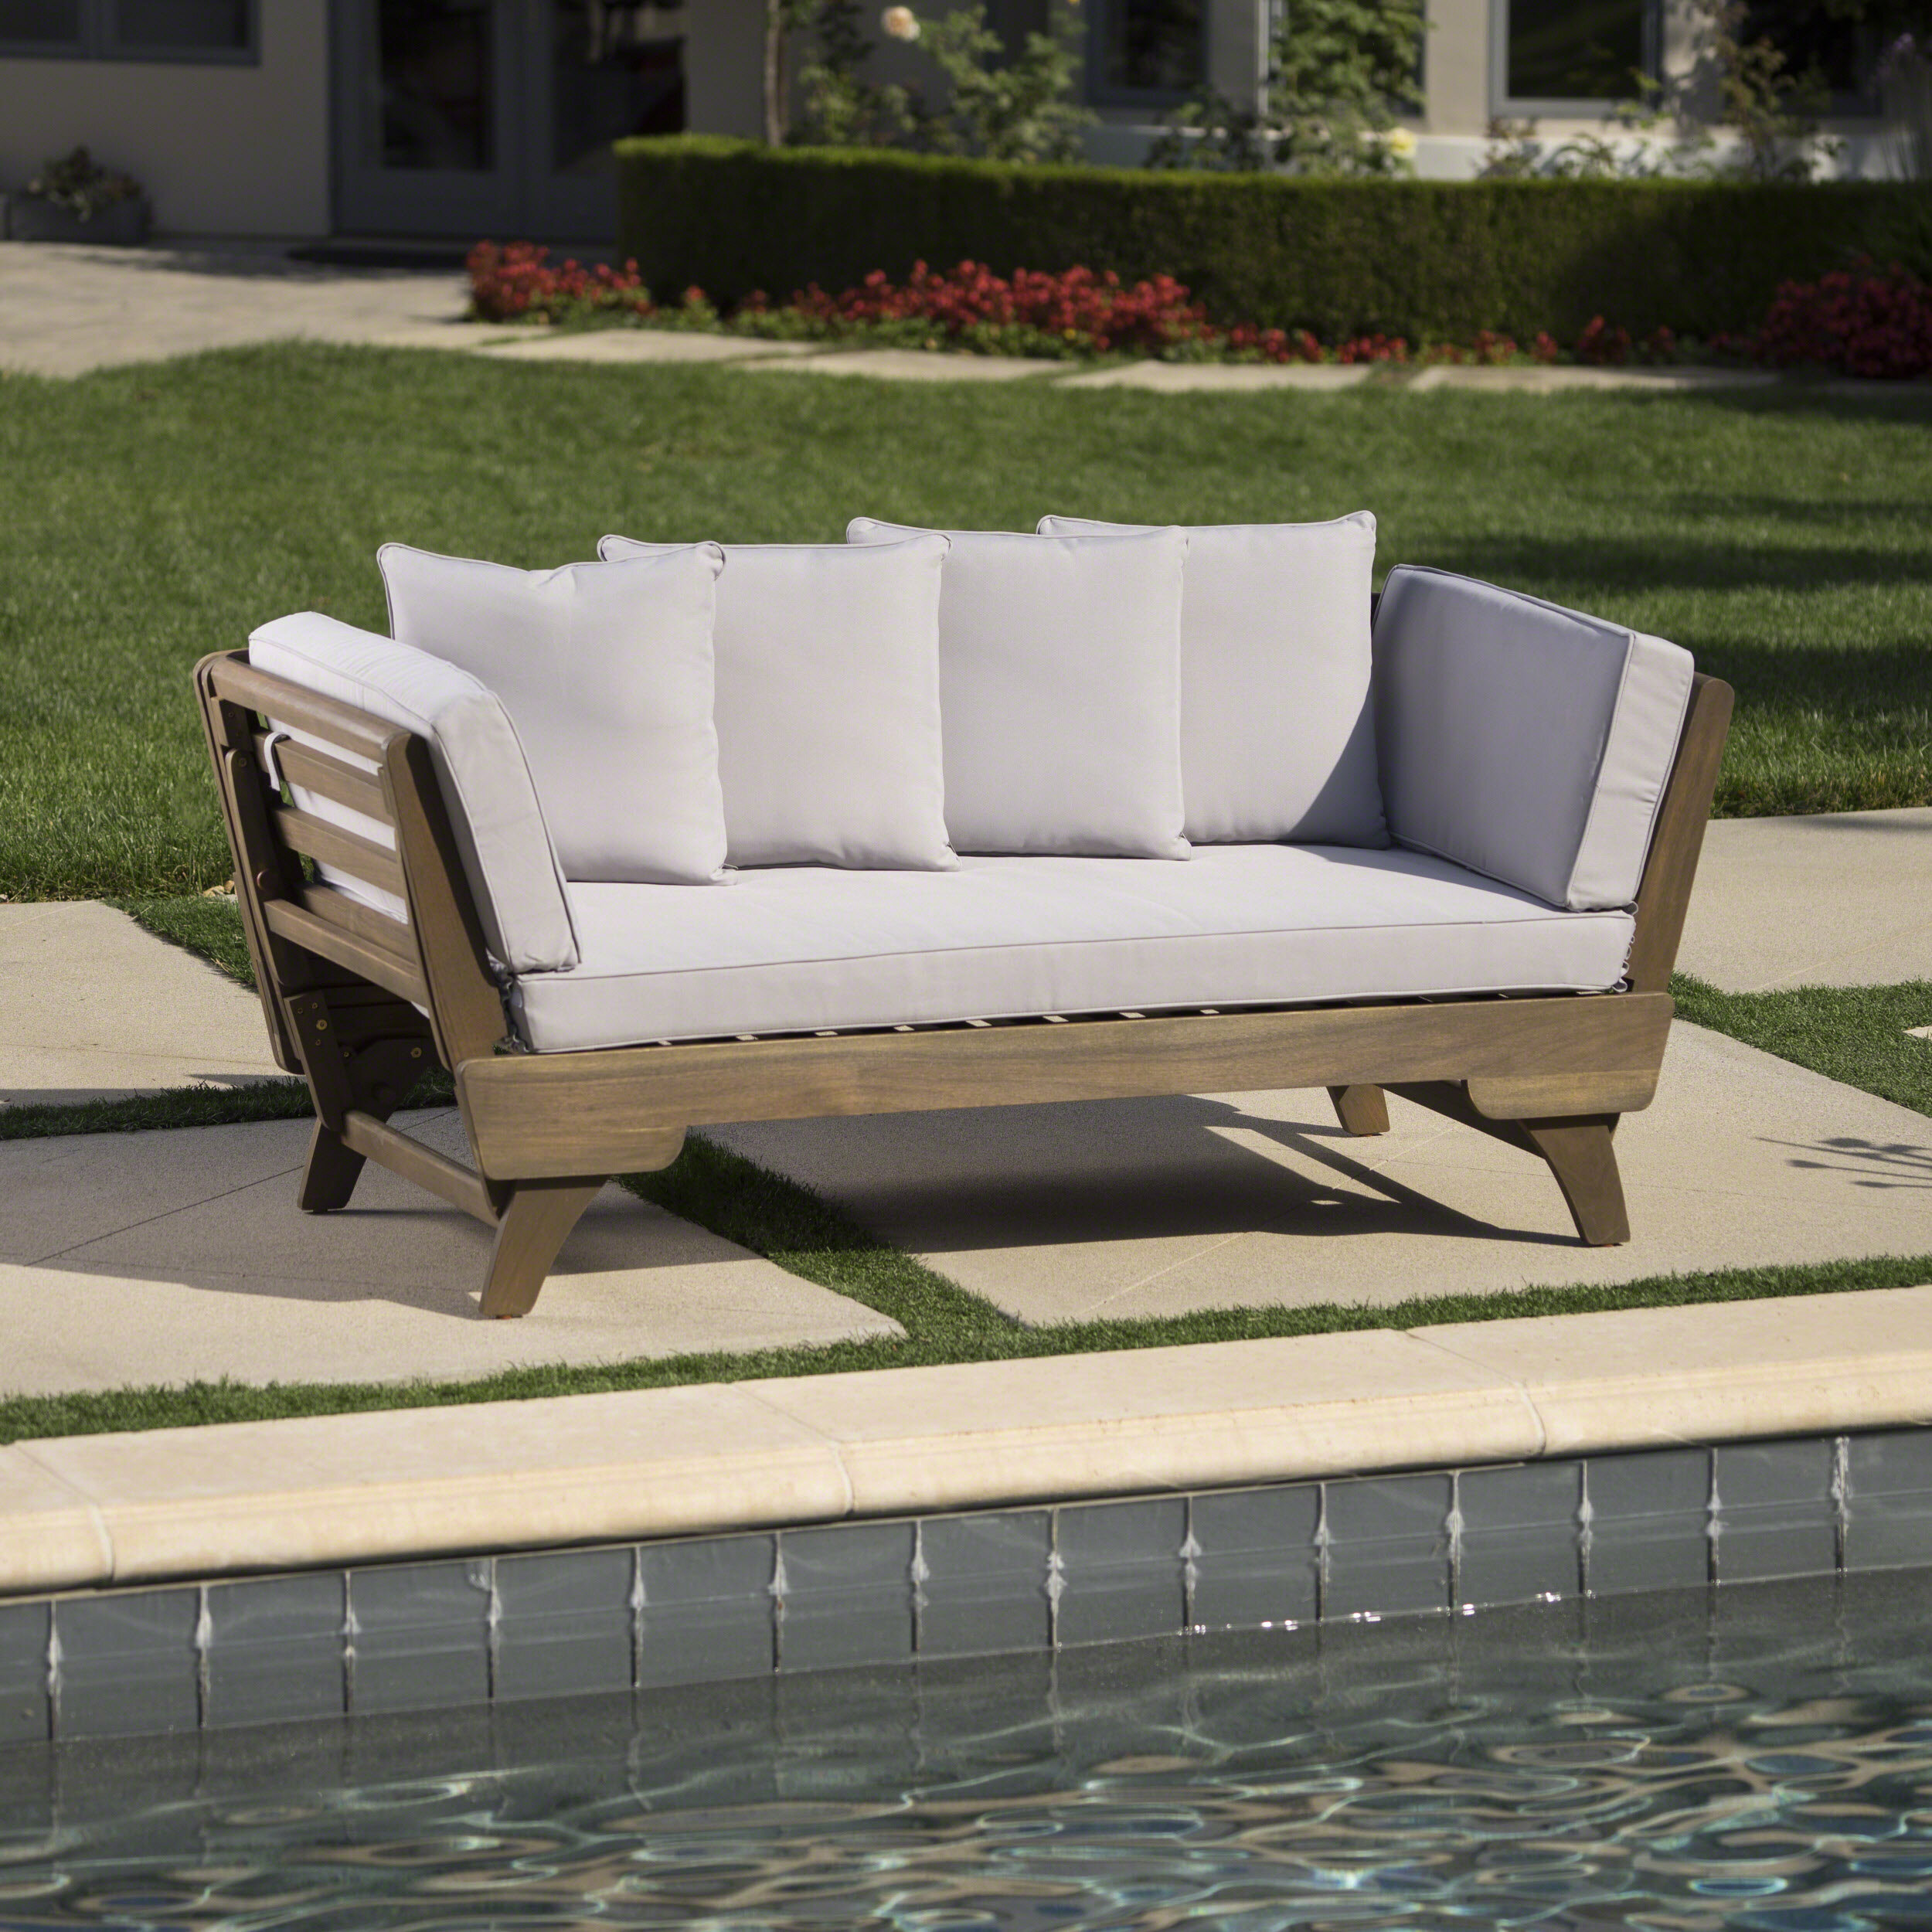 Union Rustic Ellanti Patio Daybed with Cushions & Reviews